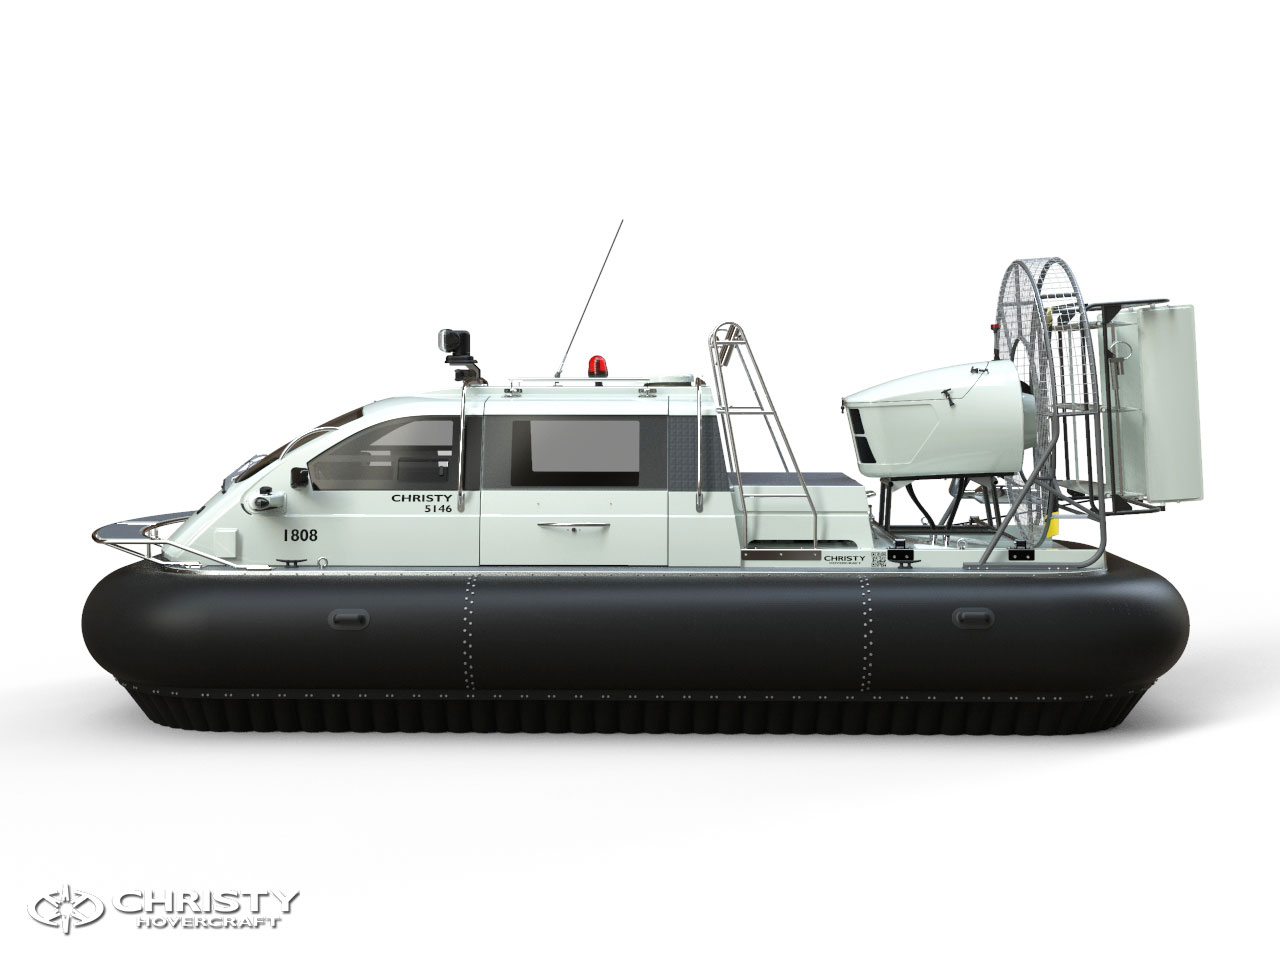 Hovercraft-Christy-5146-FC-Trolling-Edition-(3).jpg | фото №1